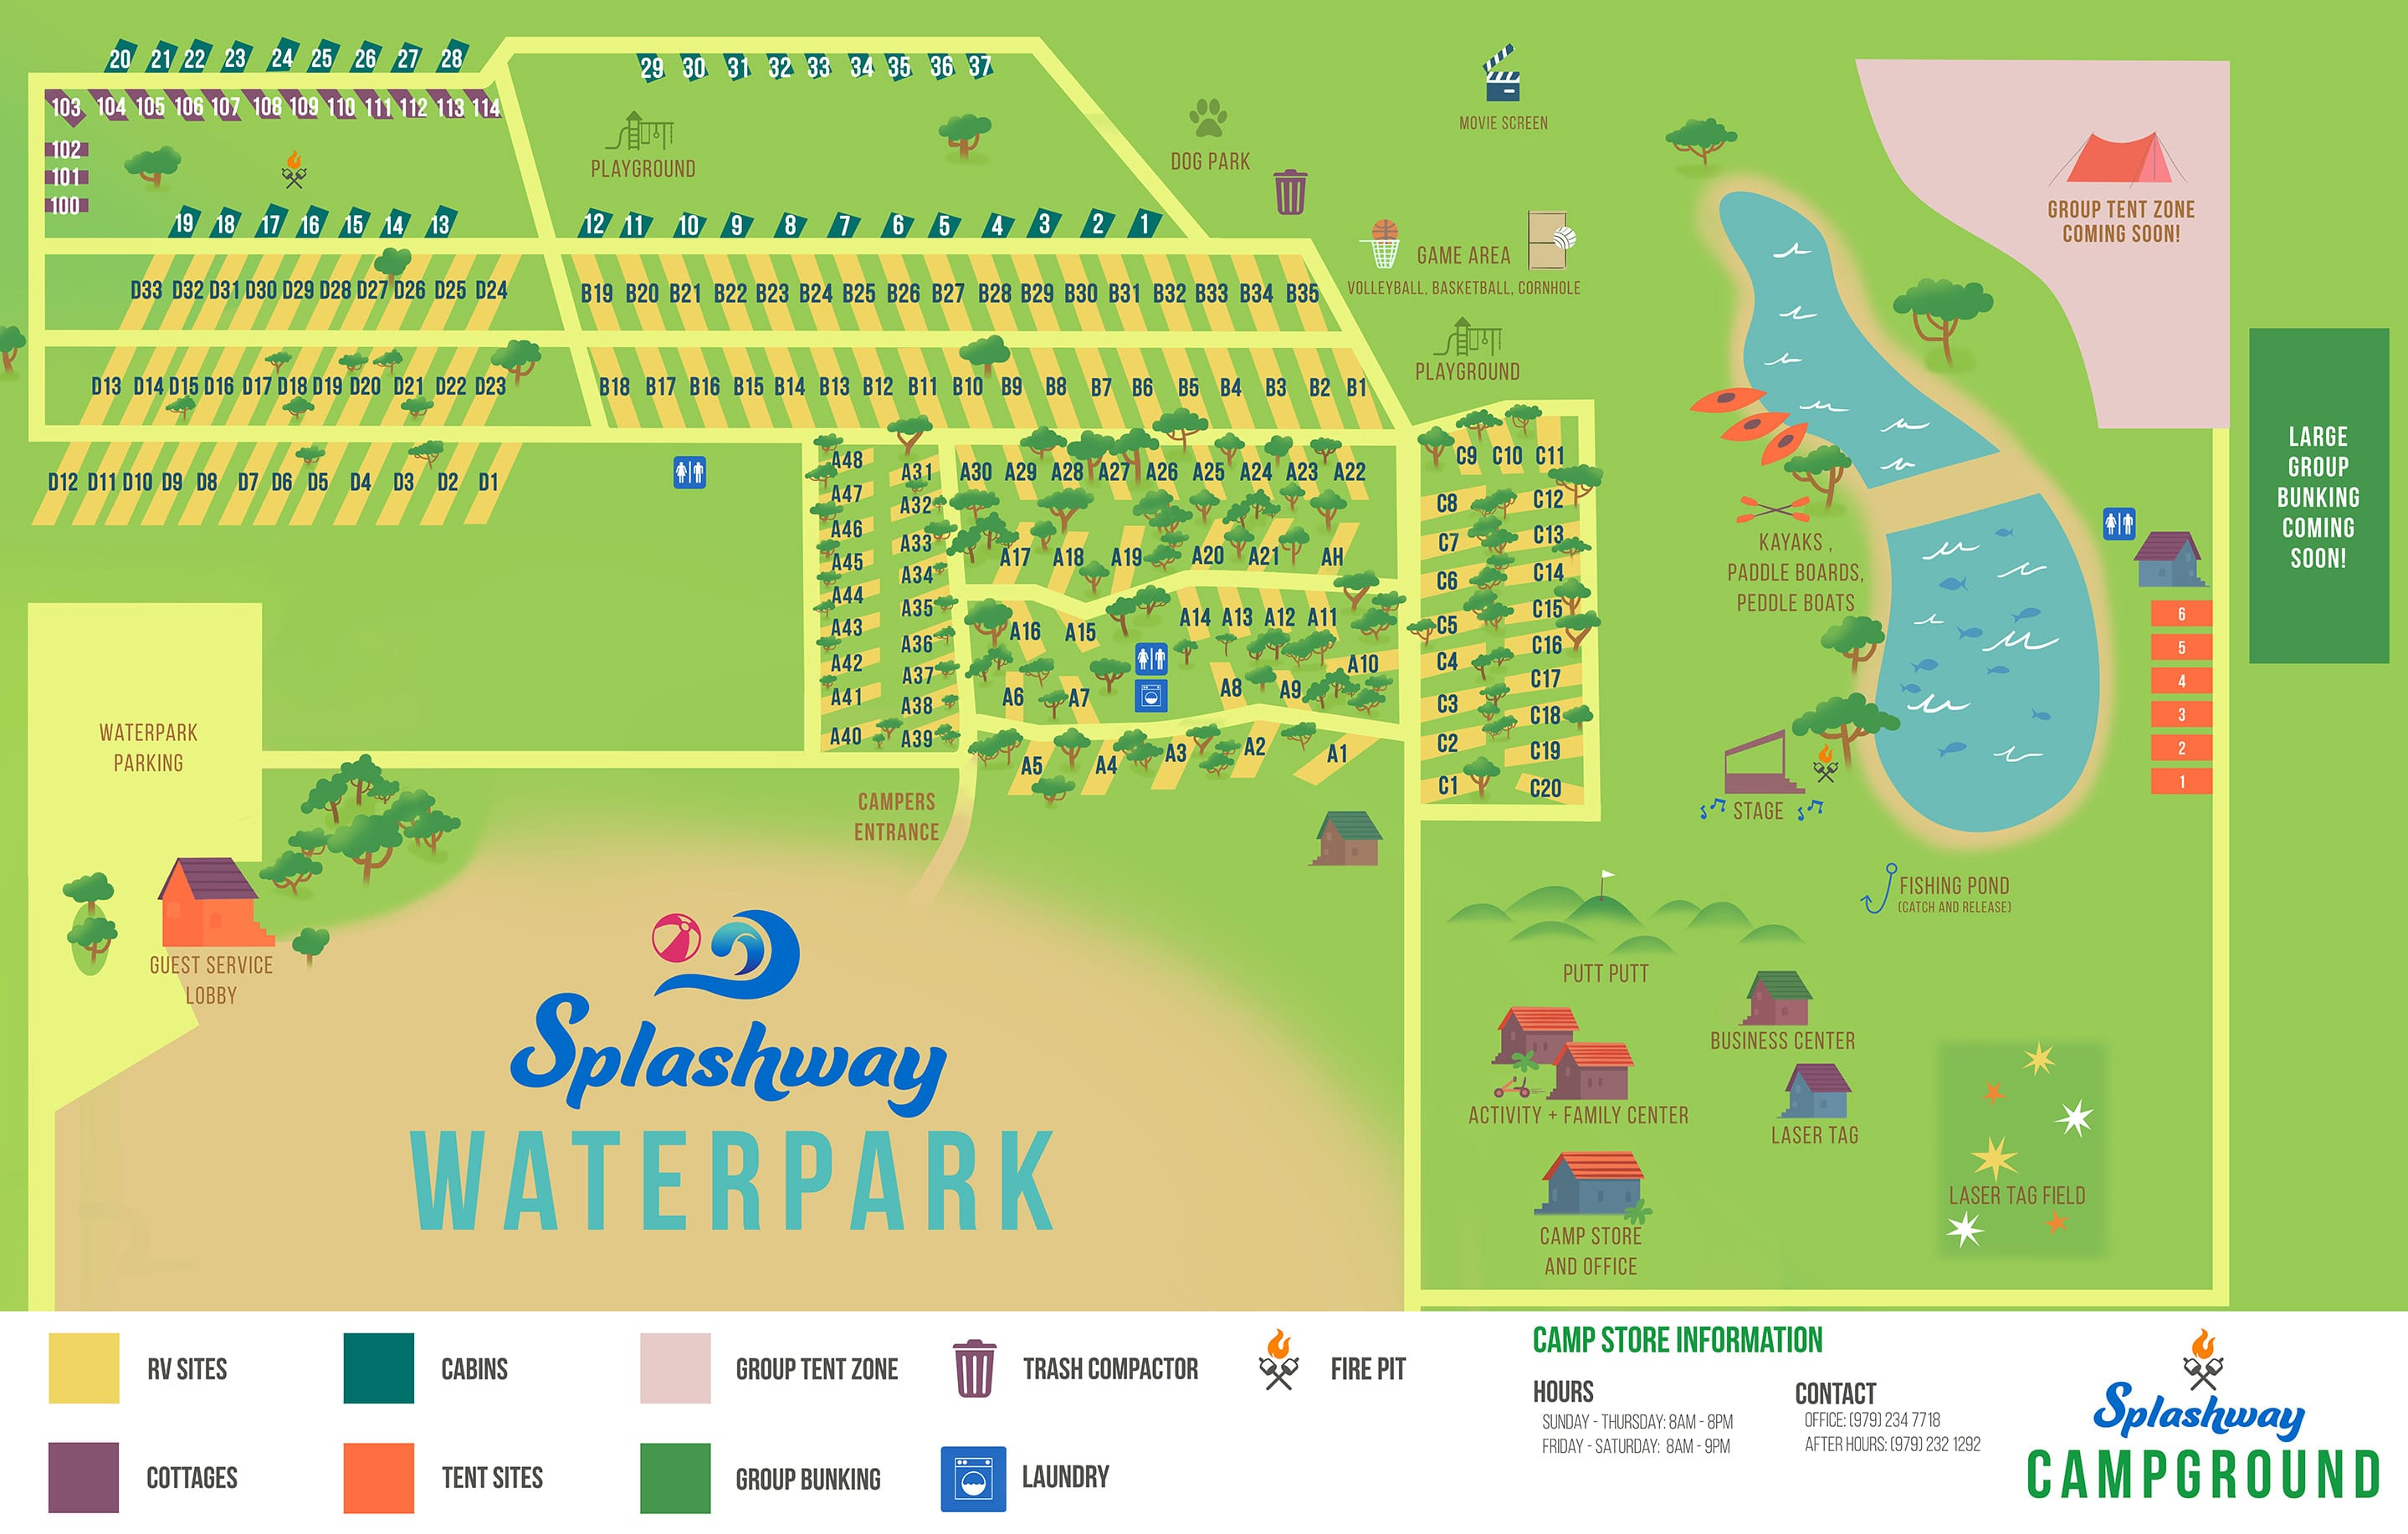 Splashway Campground Map